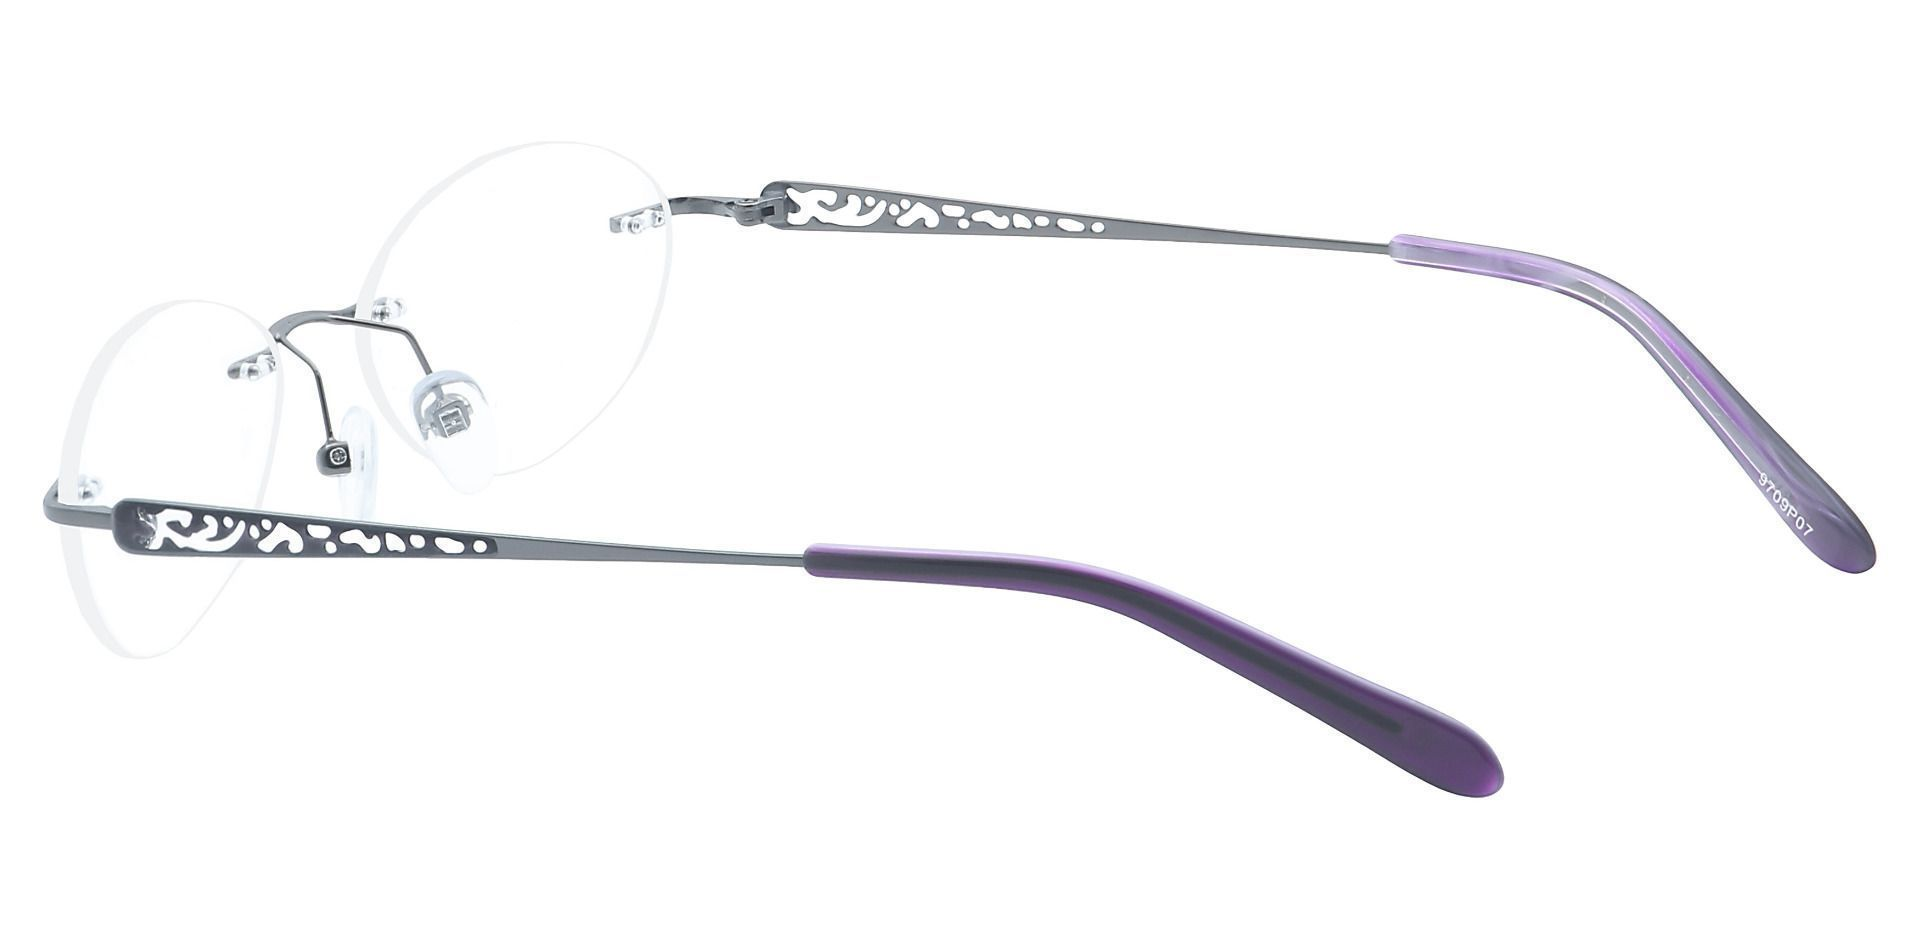 Christina Rimless Non-Rx Glasses - The Frame Is Black And Purple